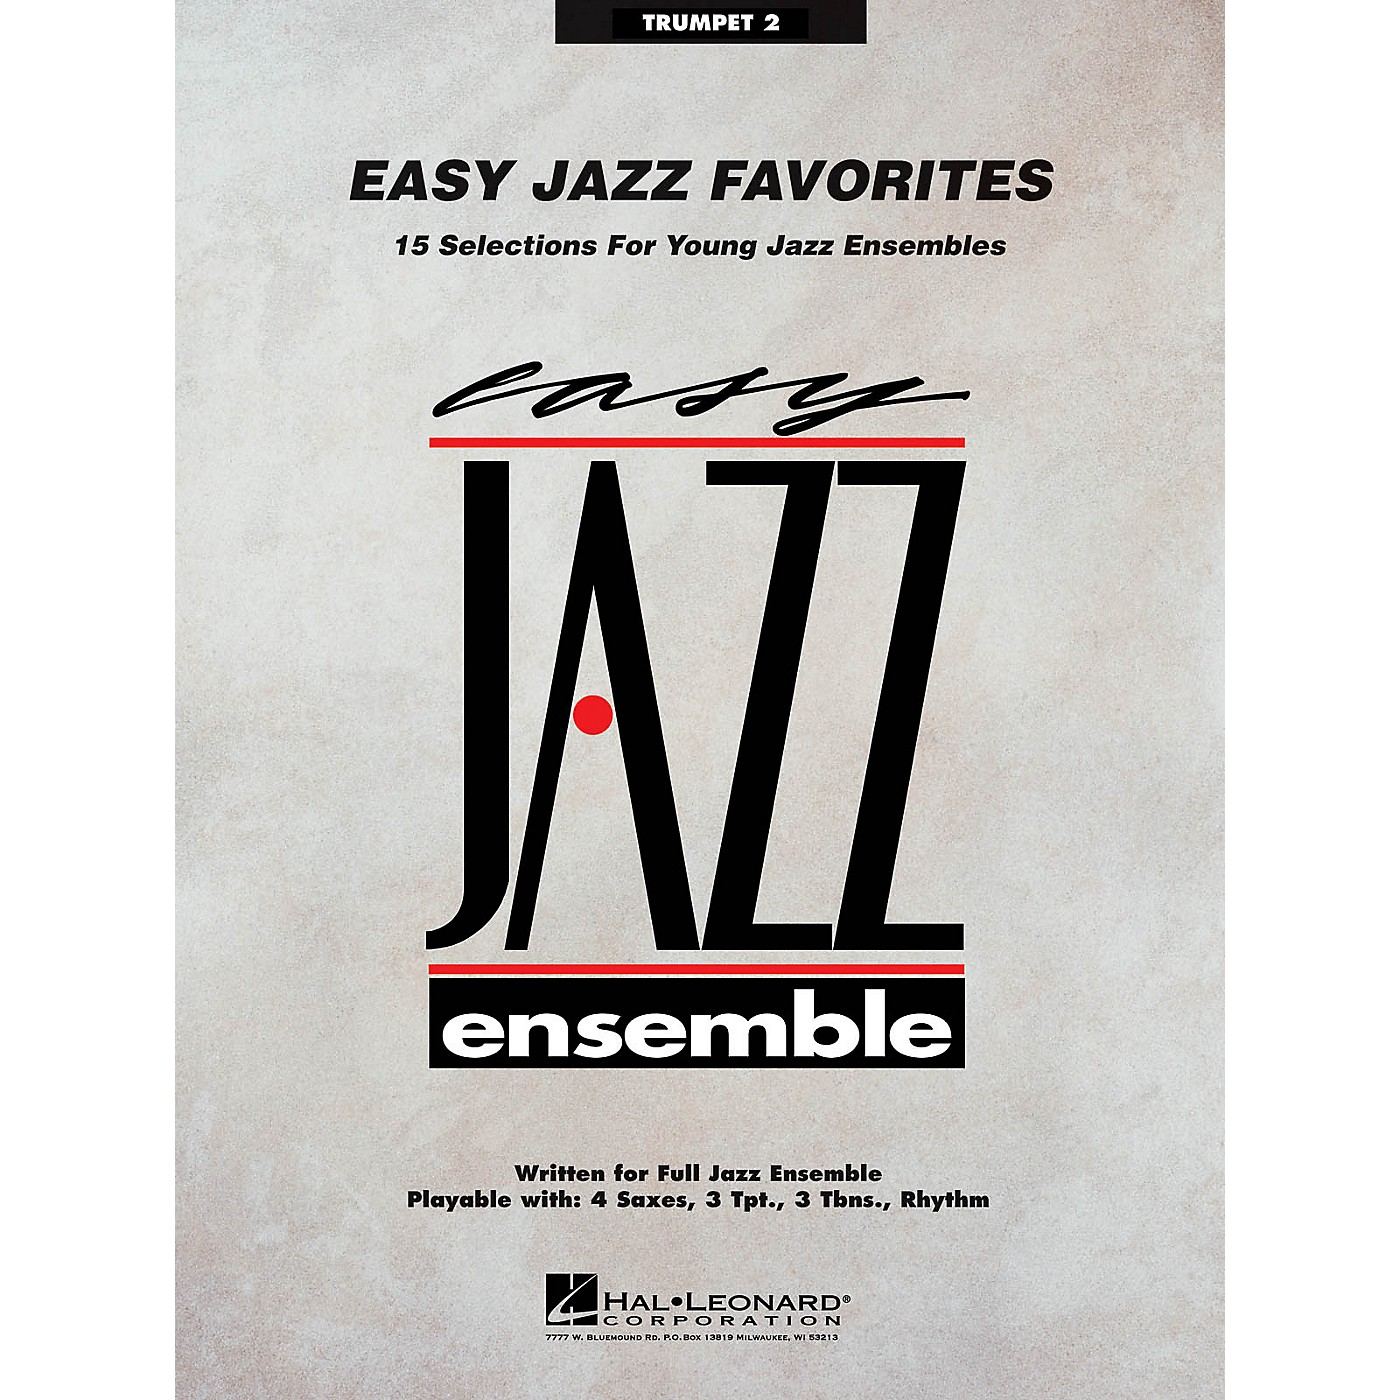 Hal Leonard Easy Jazz Favorites - Trumpet 2 Jazz Band Level 2 Composed by Various thumbnail